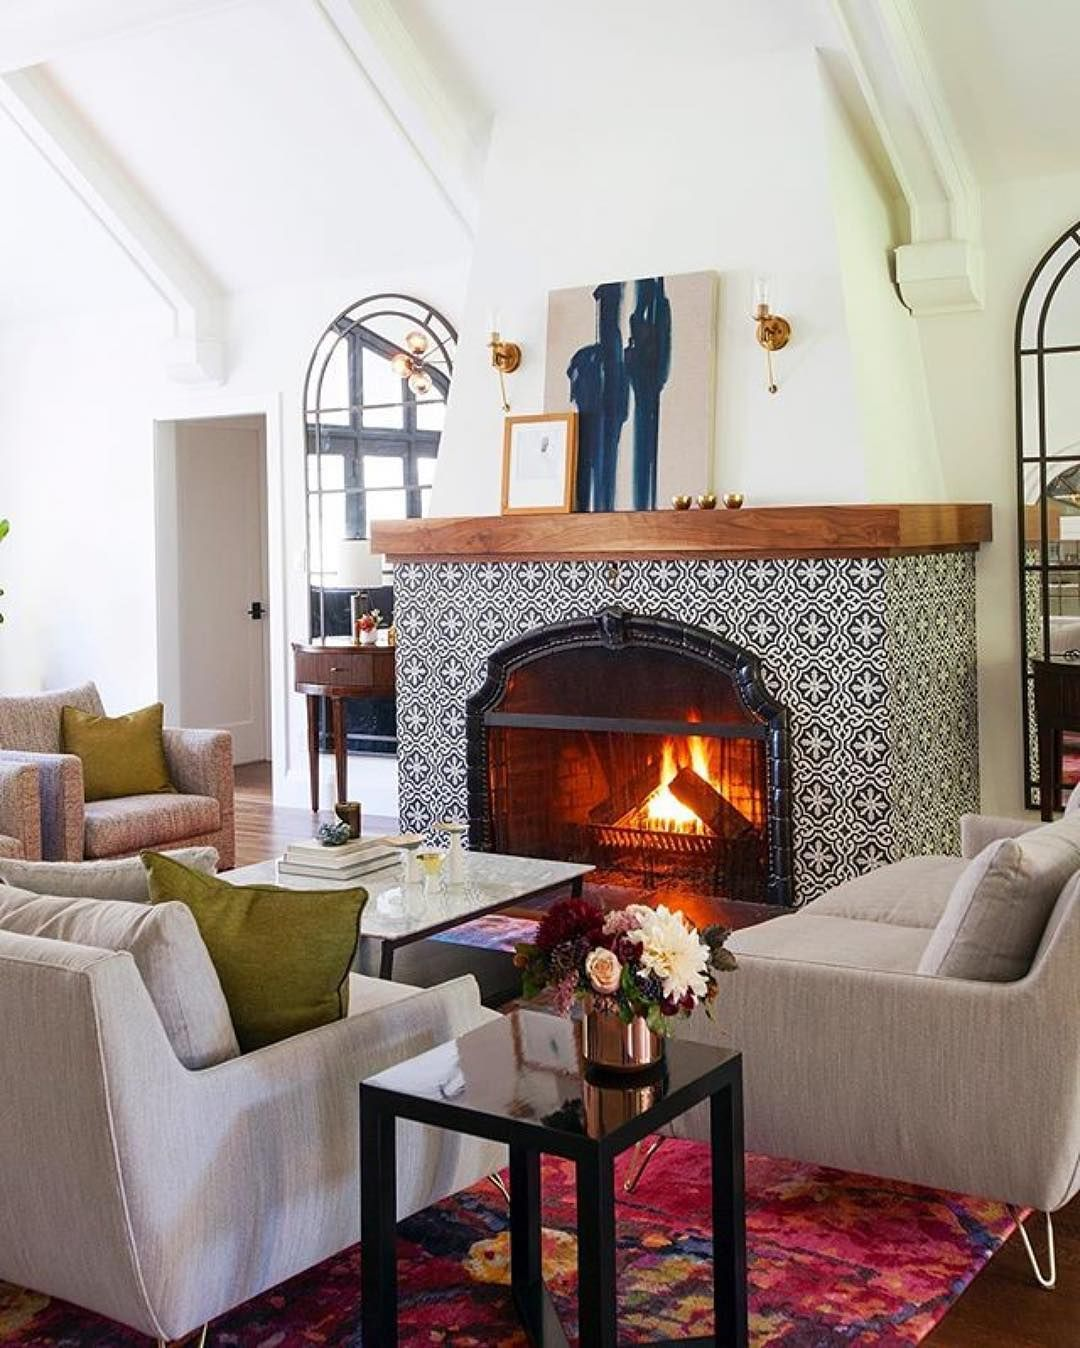 Cement Tile Shop Encaustic Cement Tile Instagram Feed Home Fireplace Cozy Fireplace Home